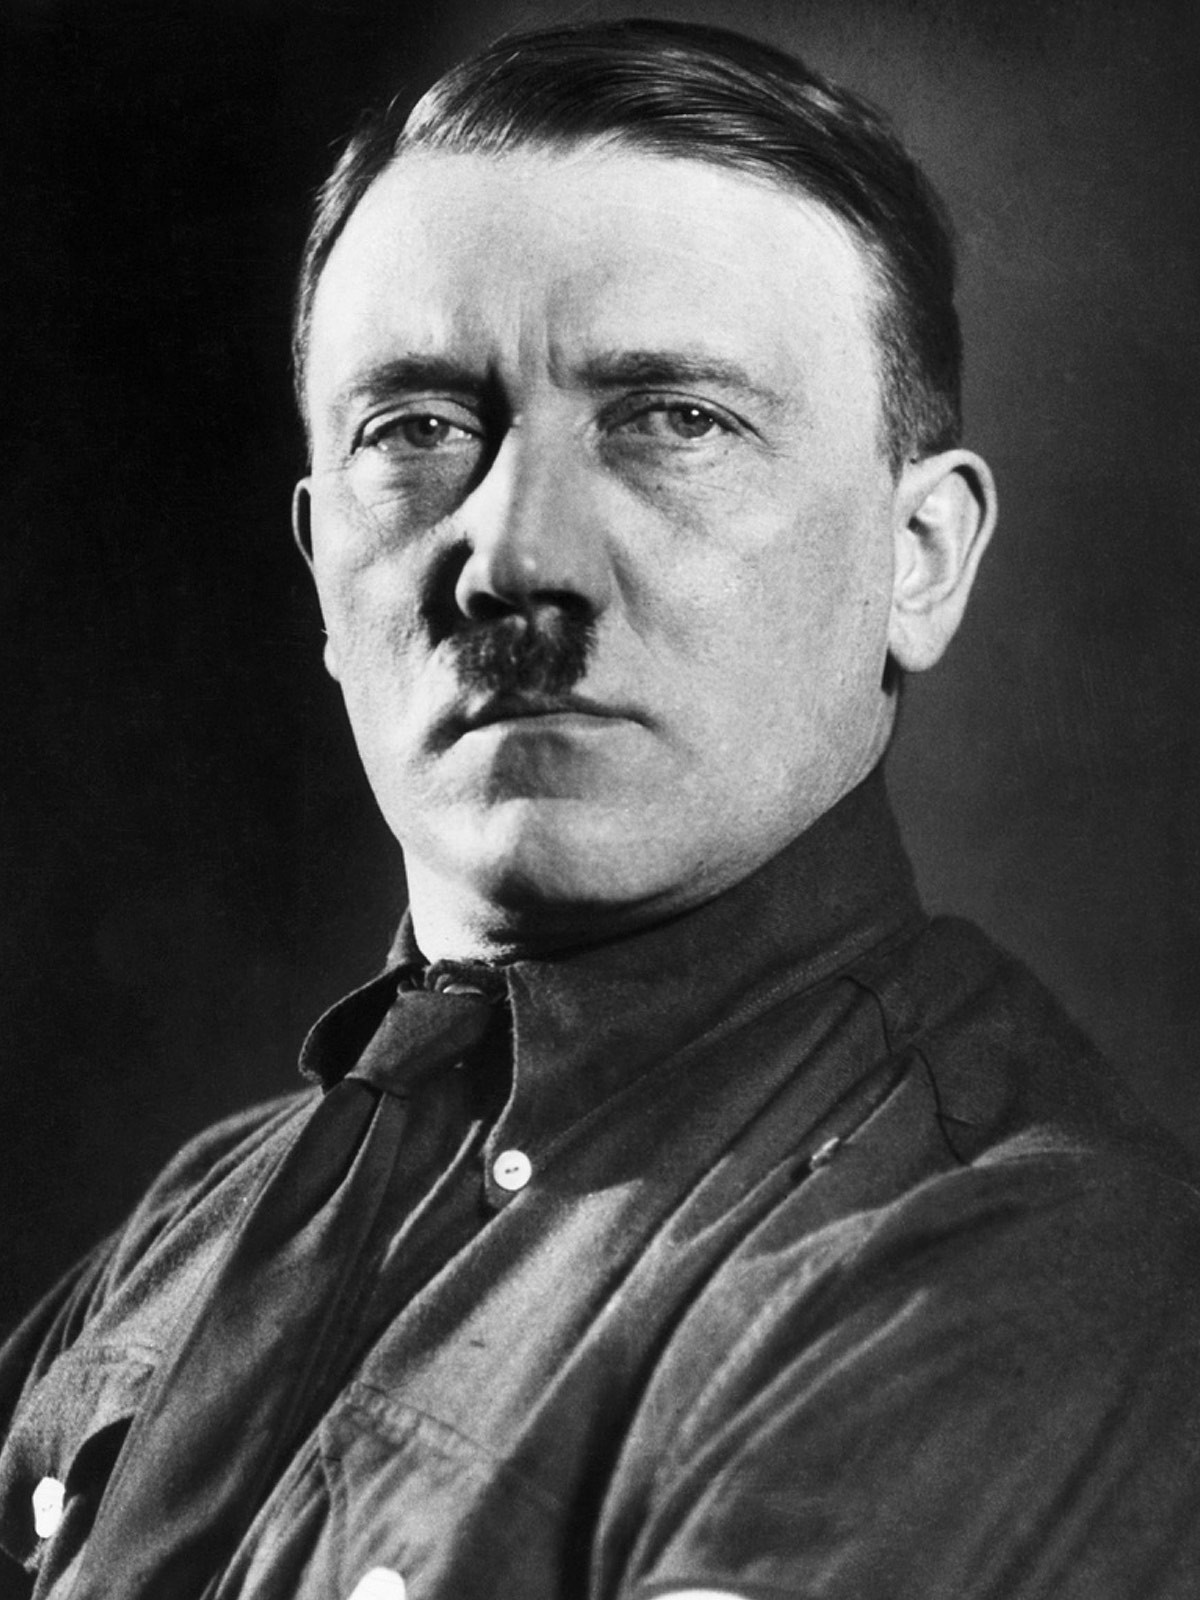 Eyewitnesses in the bunker say Hitler was determined not to be taken alive